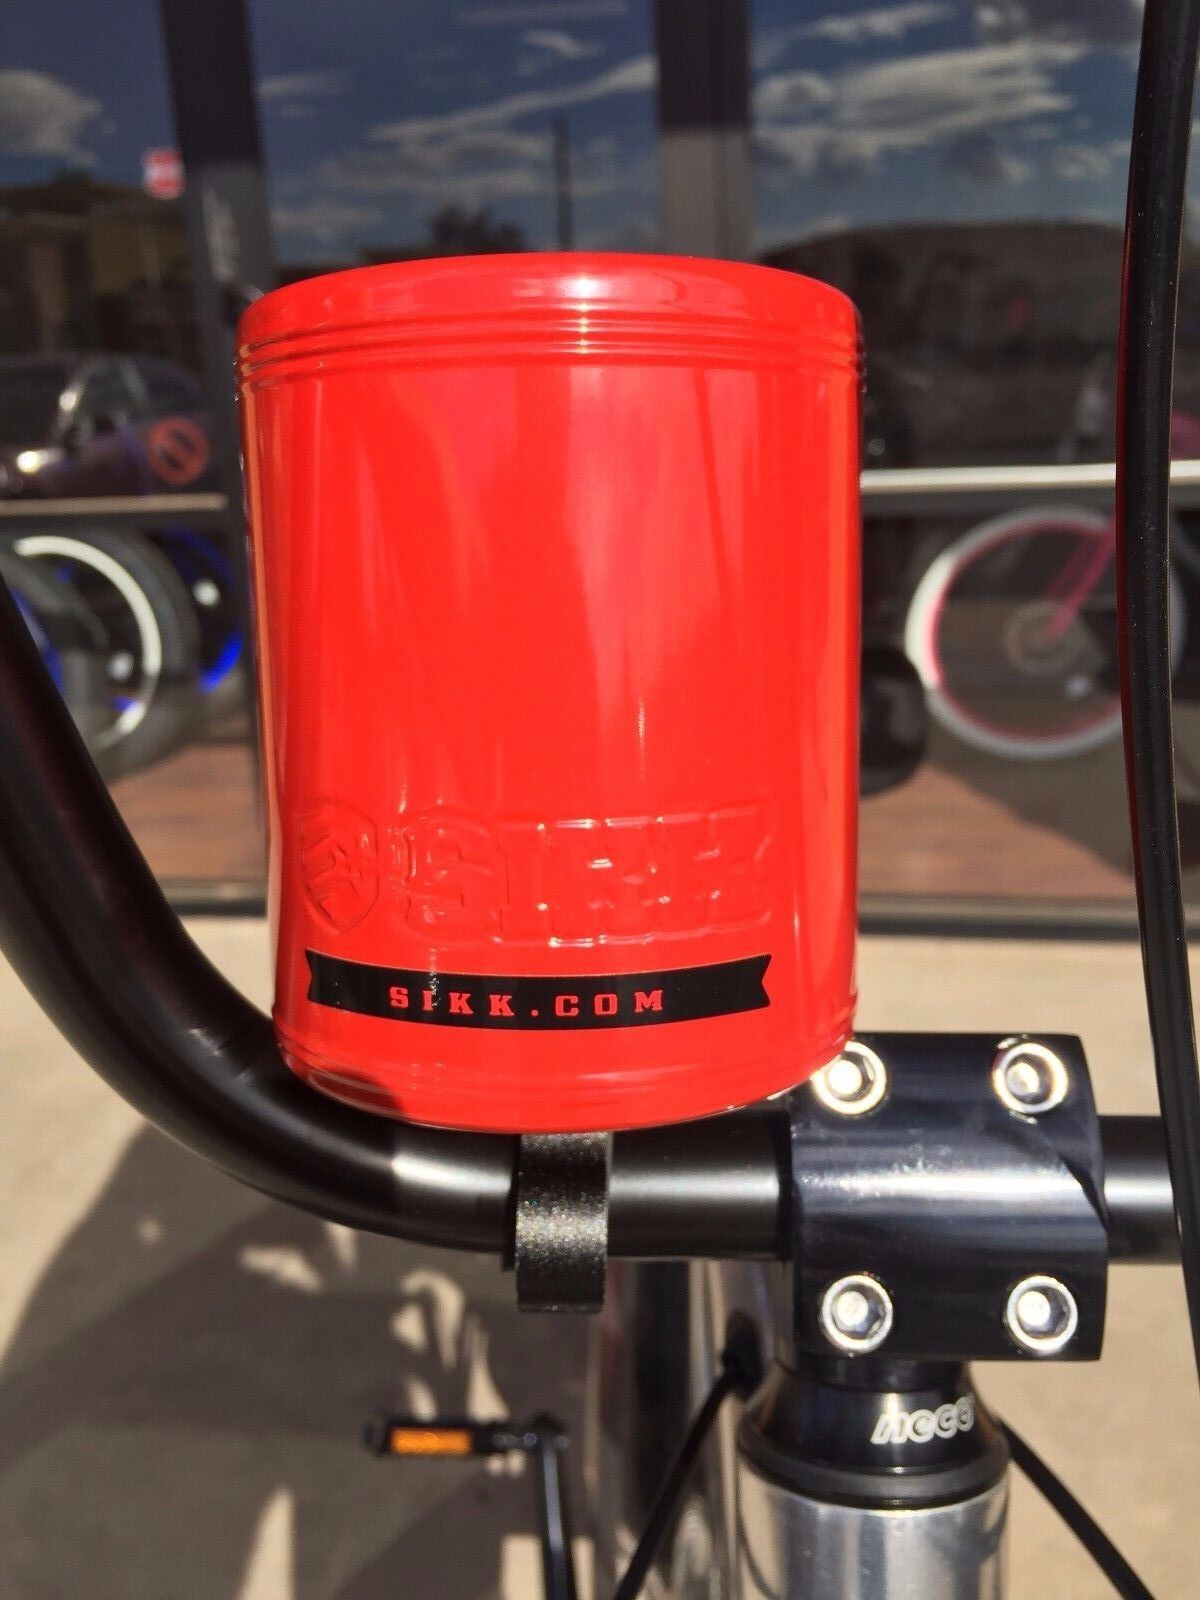 SIKK Cruiser Bicycle Stainless Steel Insulated Cup Holder PINK Beach Cruiser